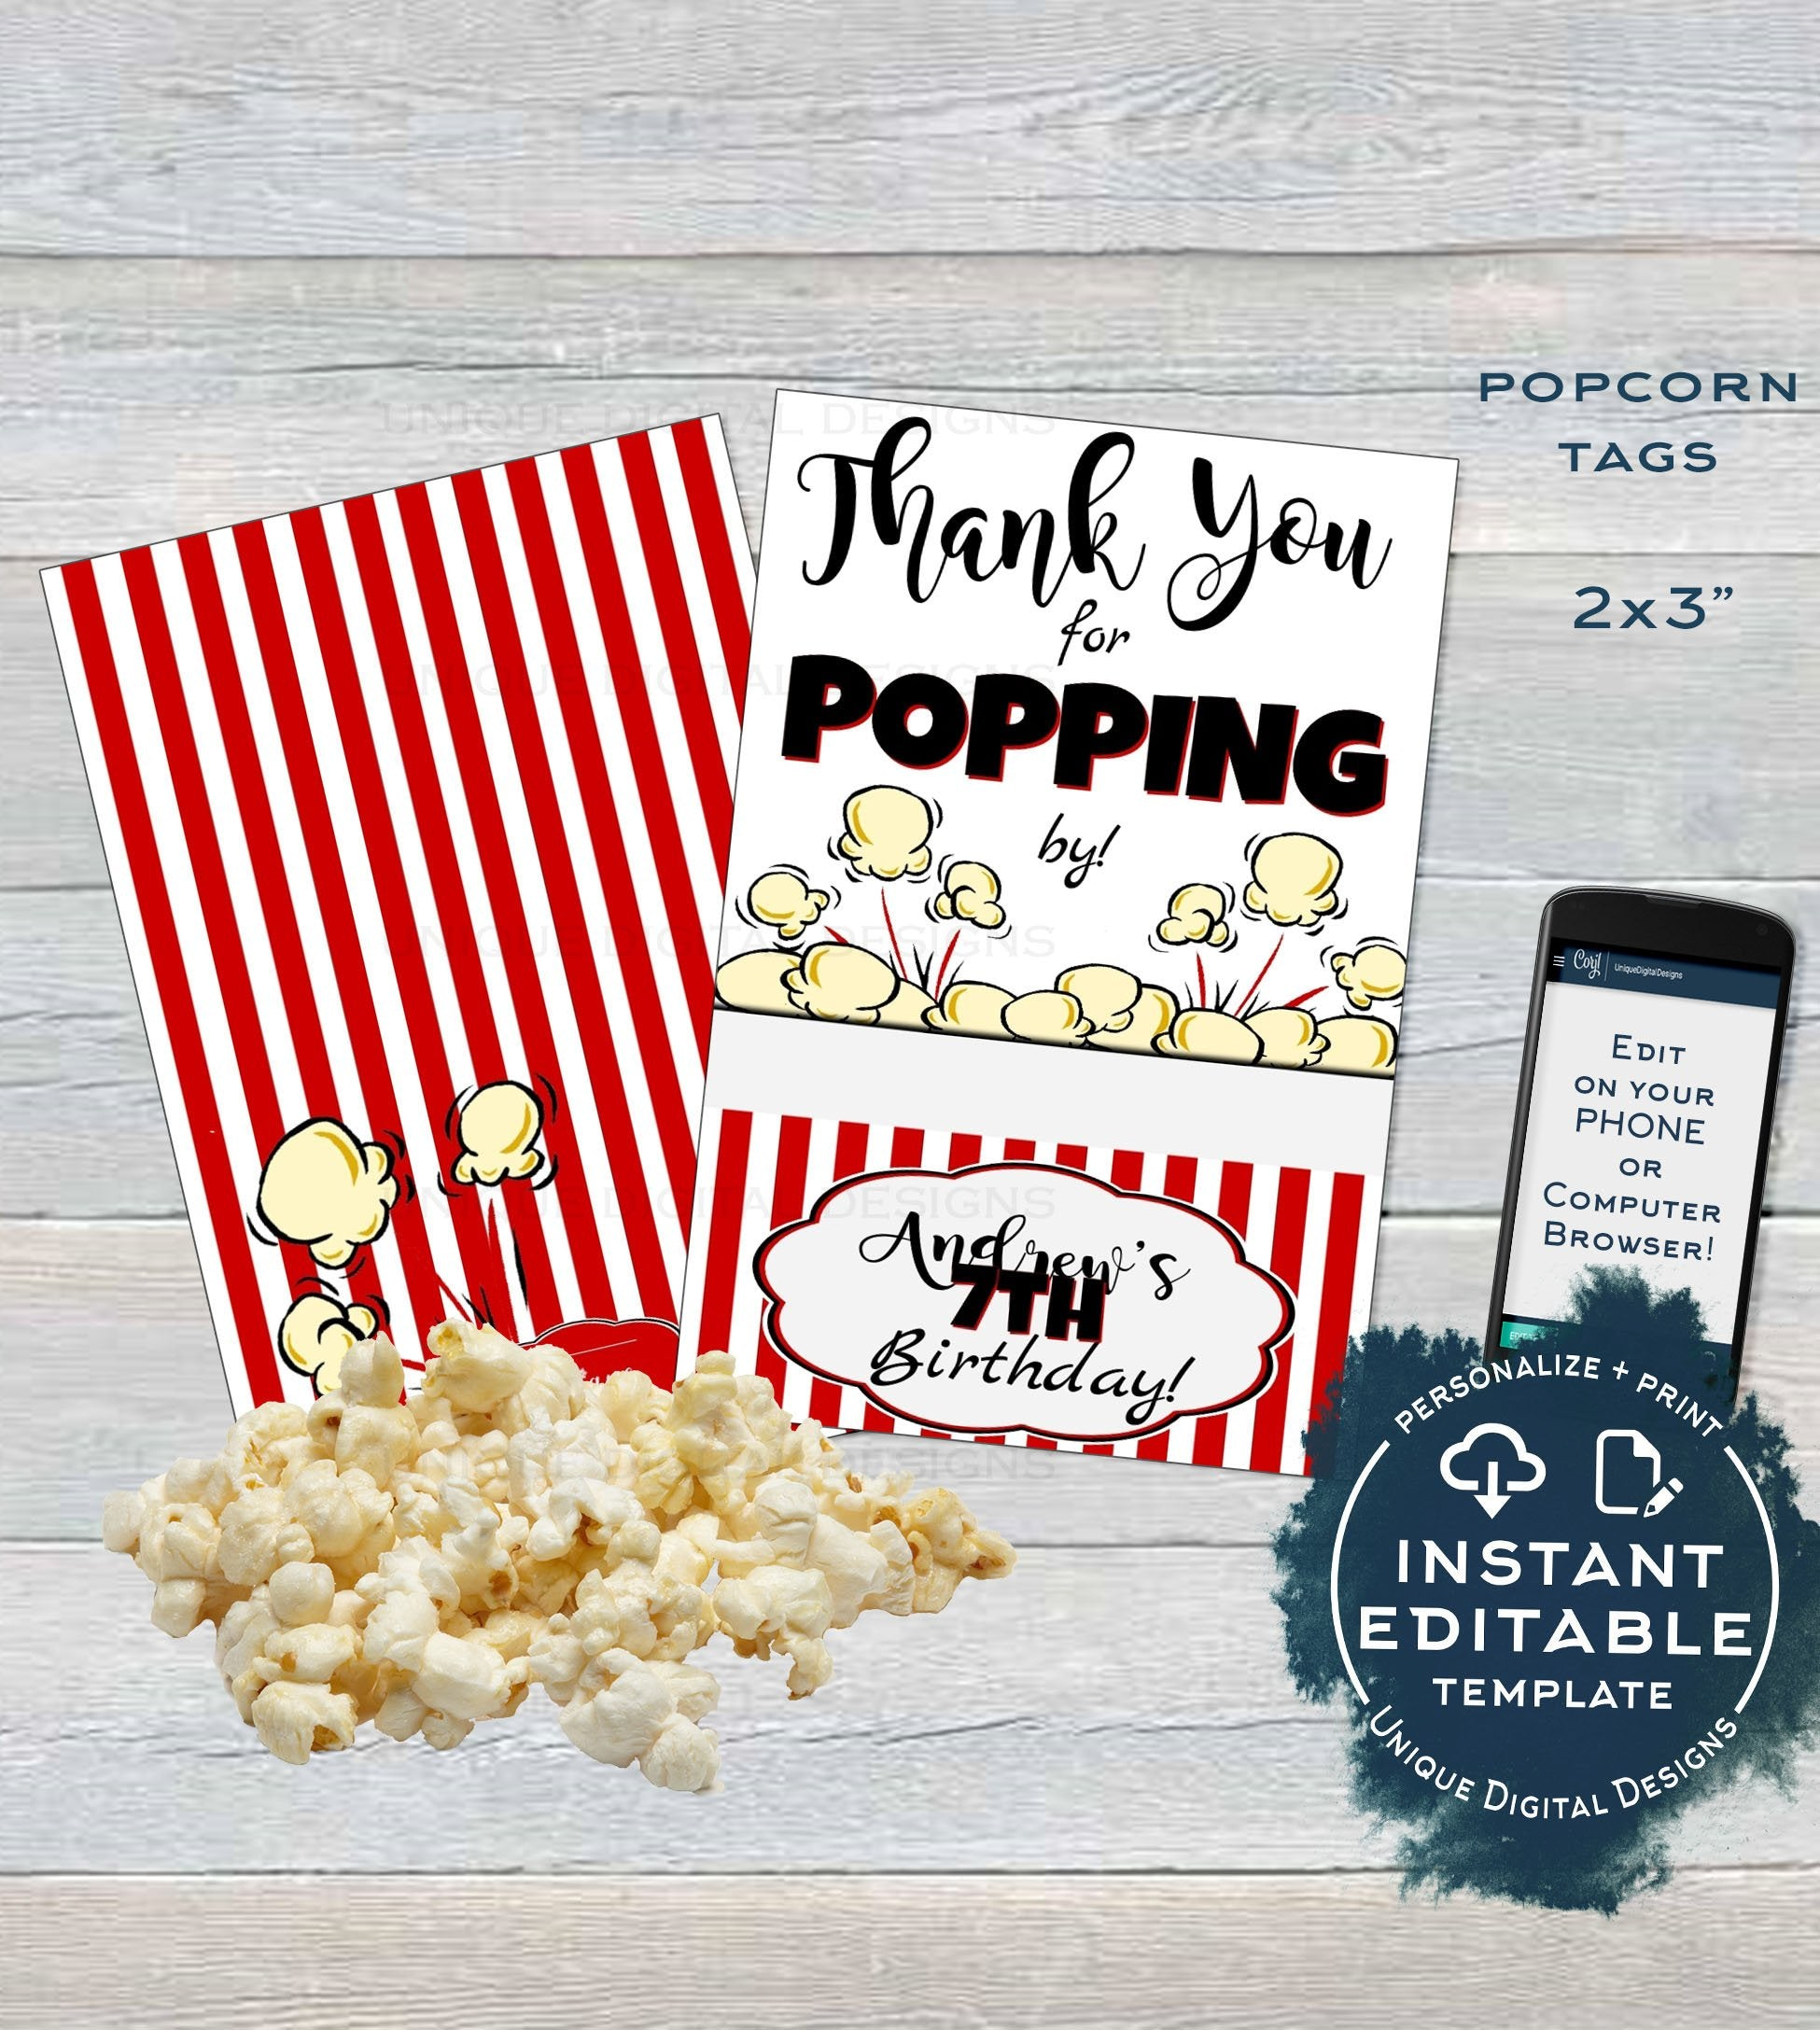 This is a graphic of Thanks for Popping by Printable inside party favors